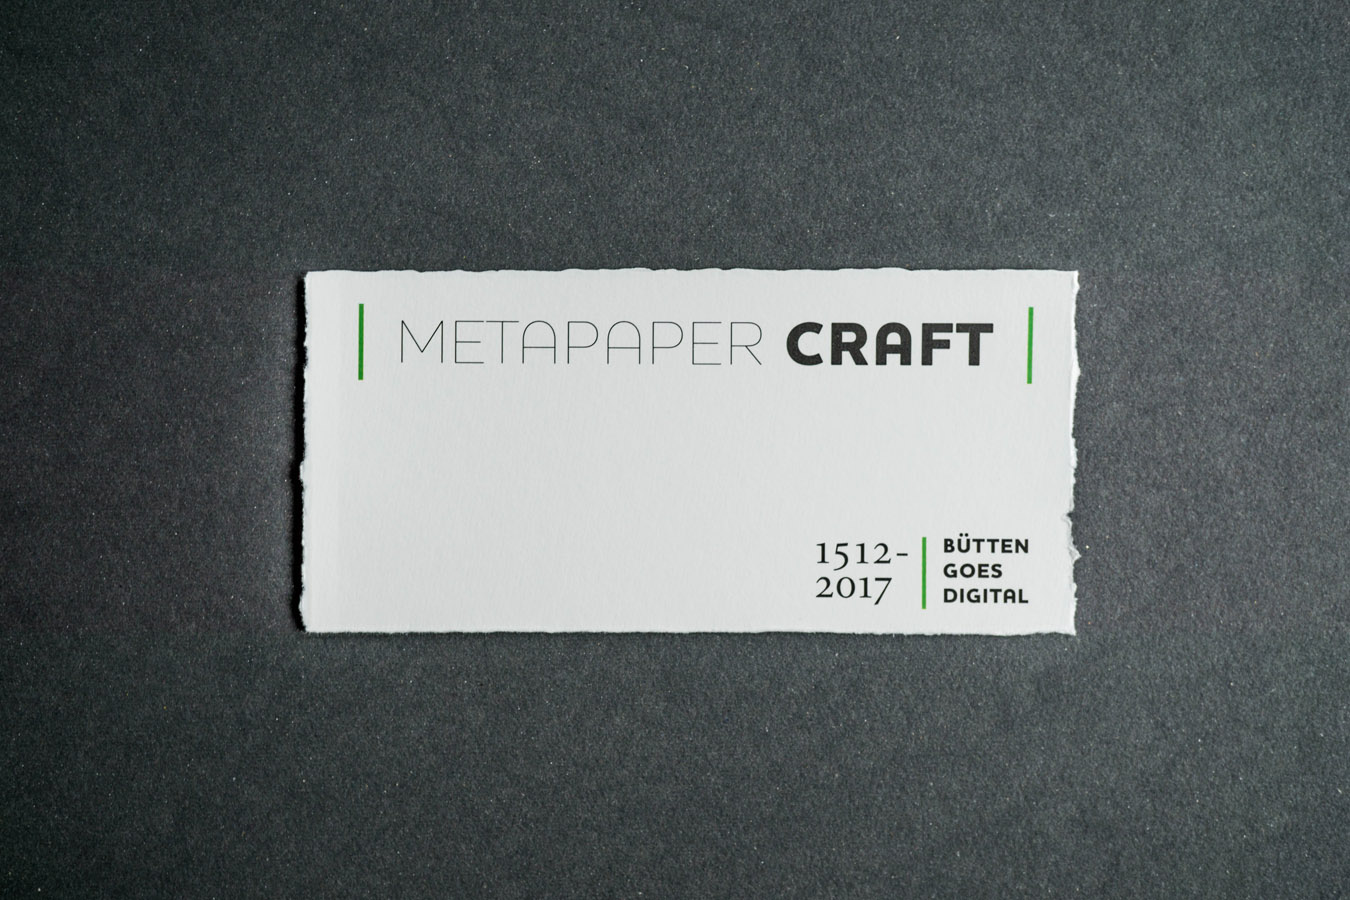 Metapaper Craft